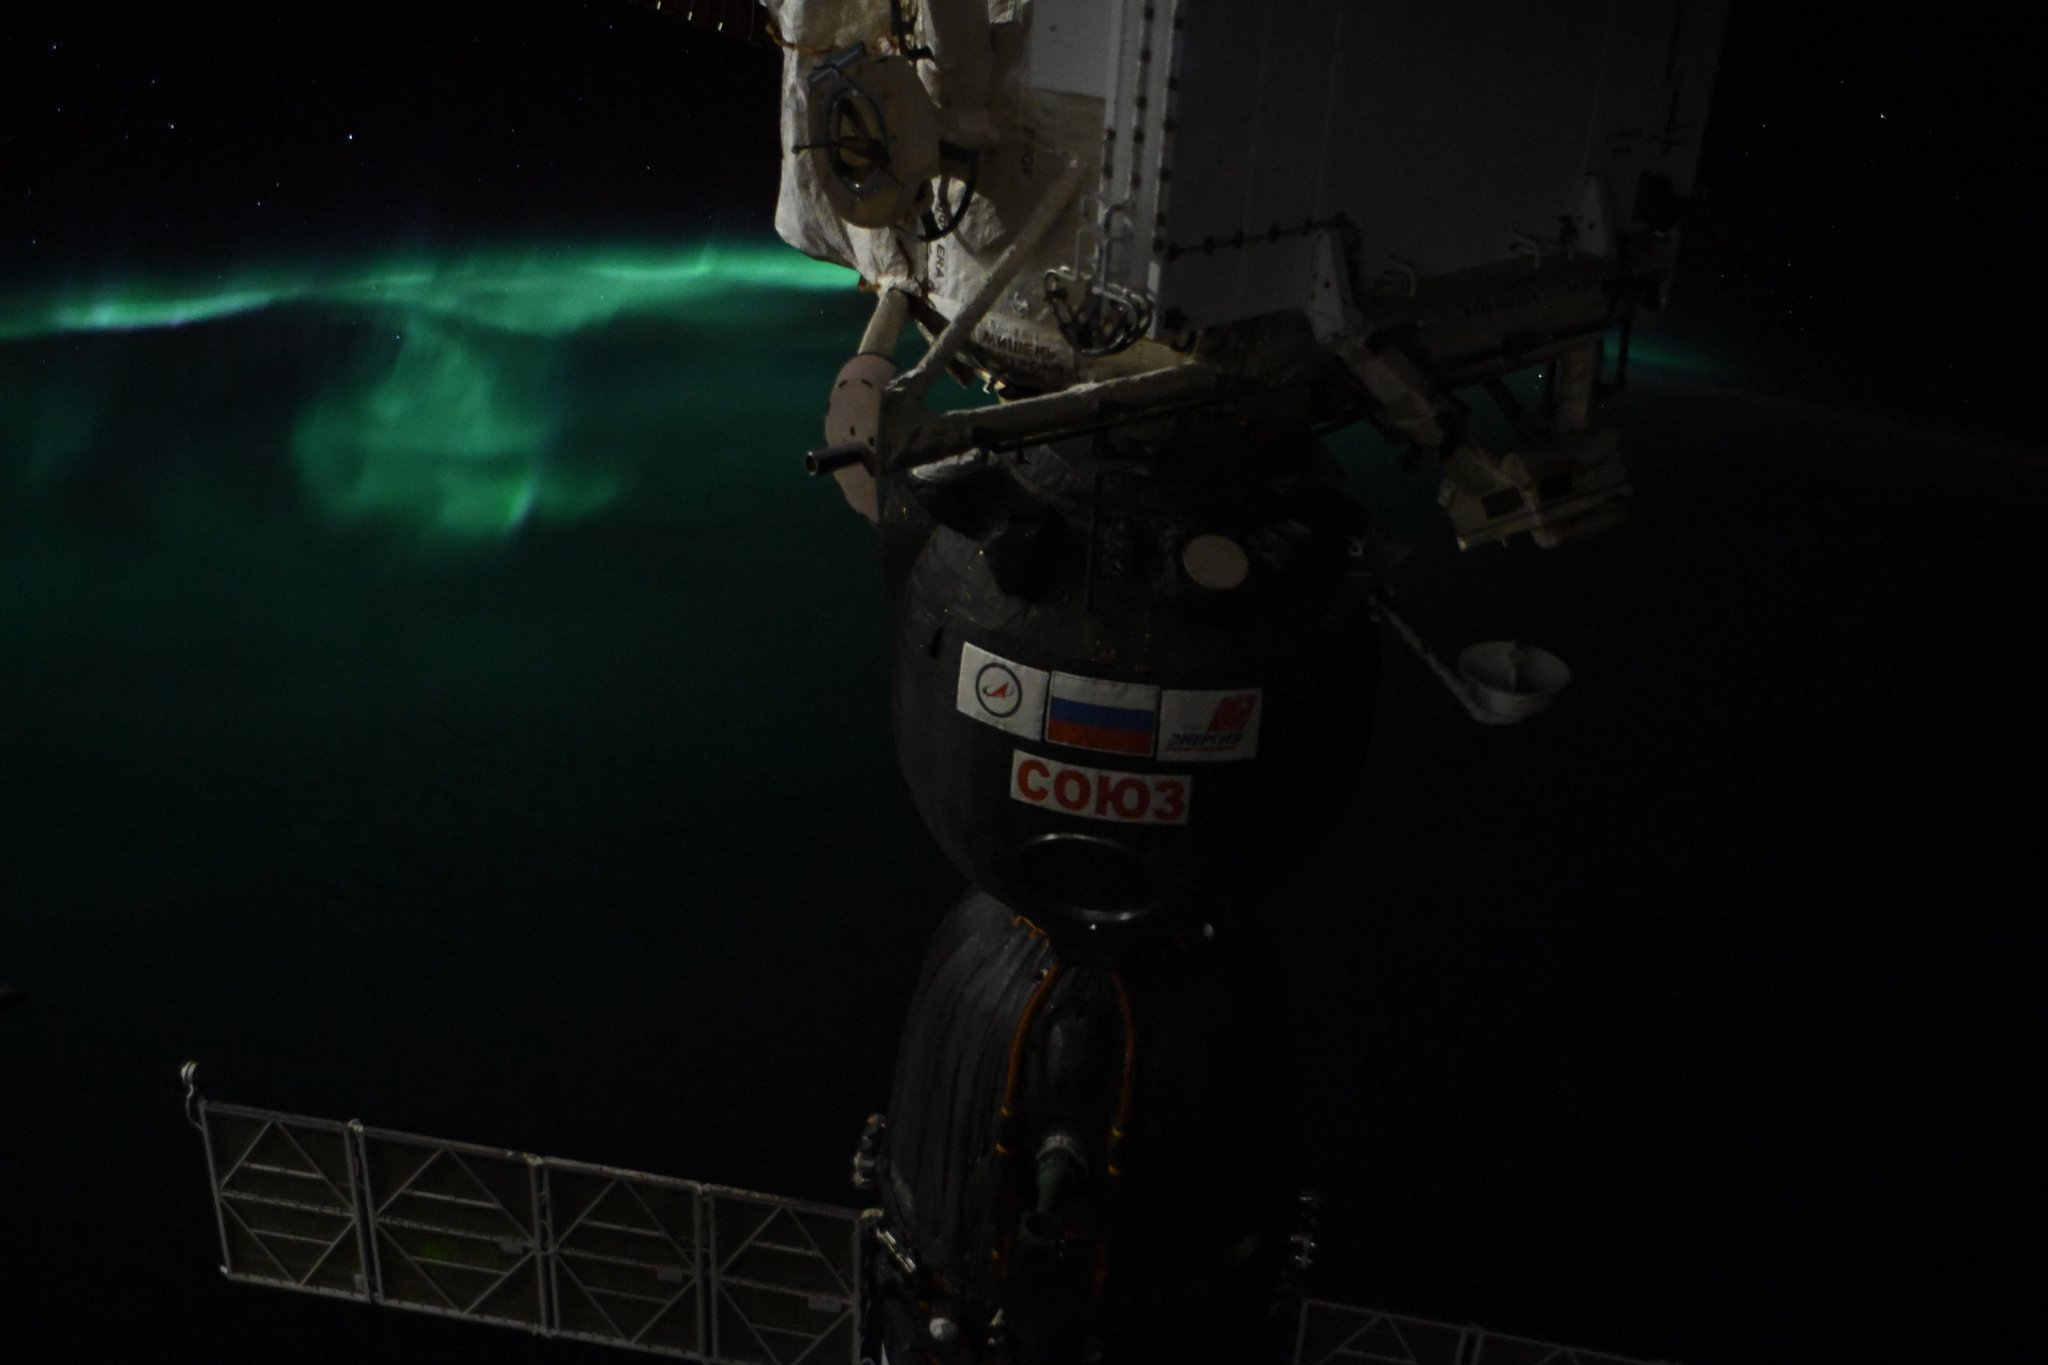 Saw my first Aurora Australis on this mission today, my silent magical old friend. 6 nose prints on the window, despite being busy with #science. Quite fittingly, the ship in the foreground is the one that carried @AstroSerena, Sergey & me into space almost 2 weeks ago. #Horizons (Photo & Caption: Alexander Gerst / NASA)